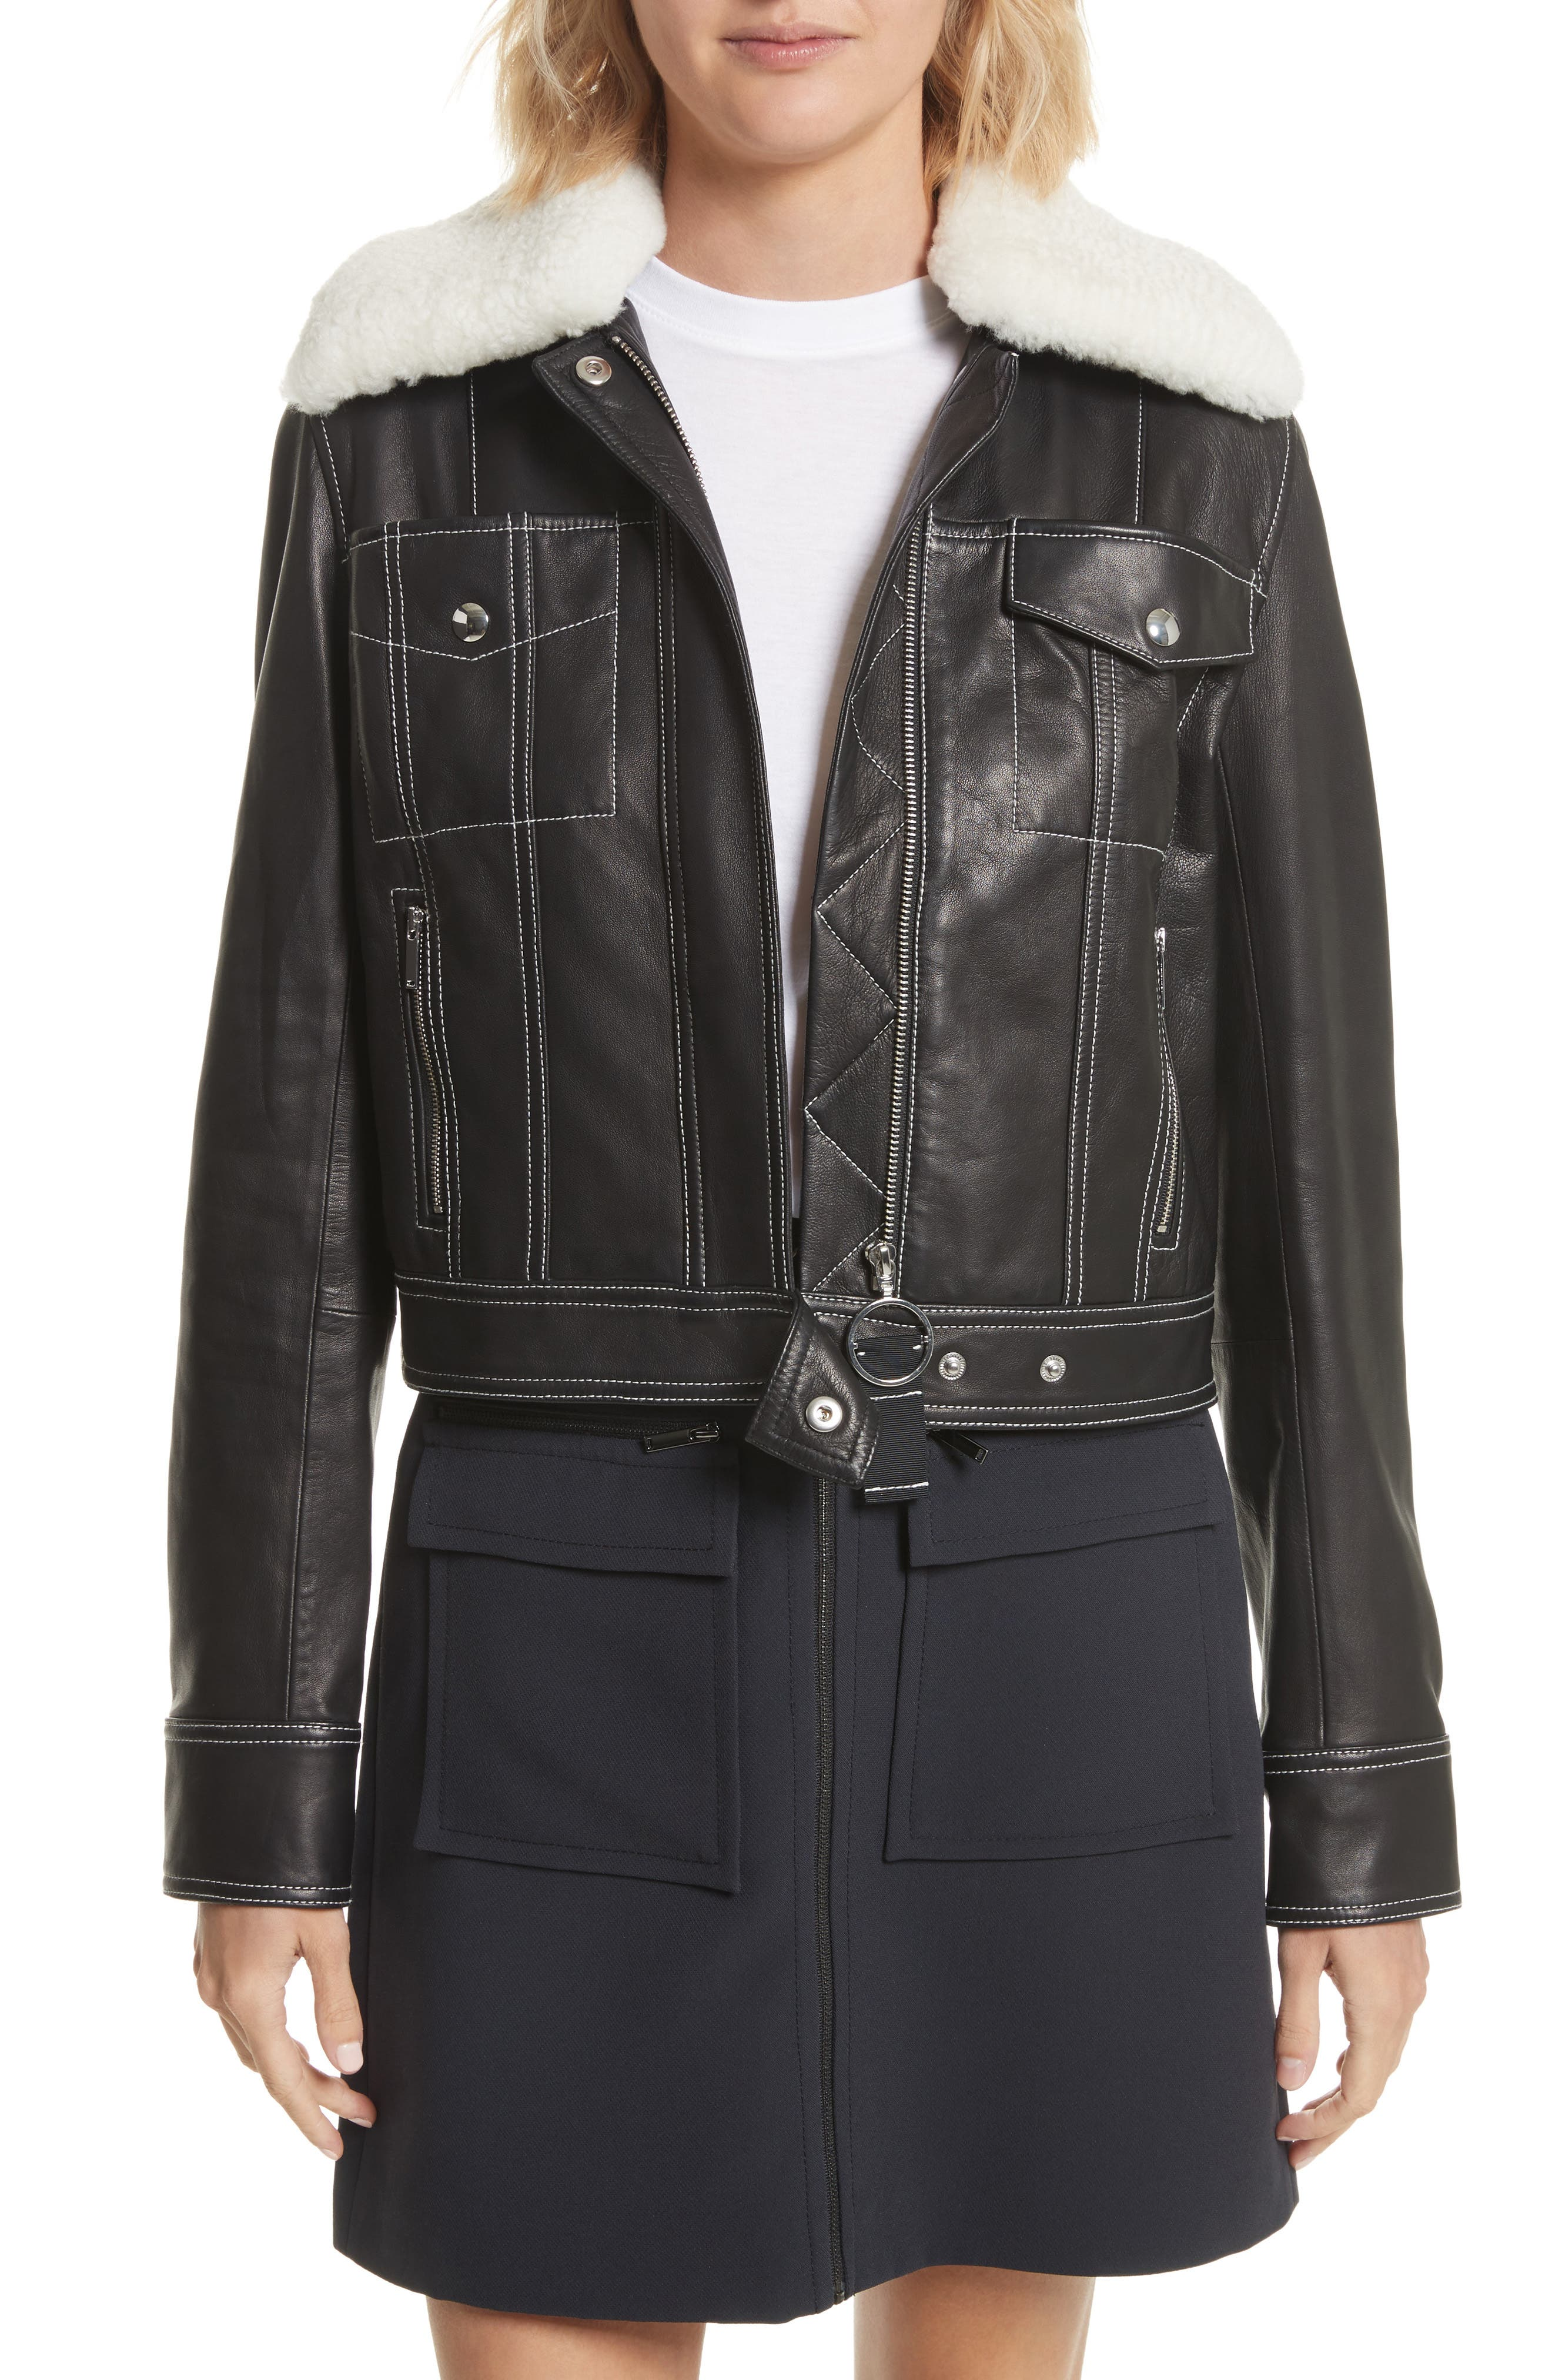 GREY Jason Wu Shrunken Leather Jacket with Removable Genuine Shearling Collar